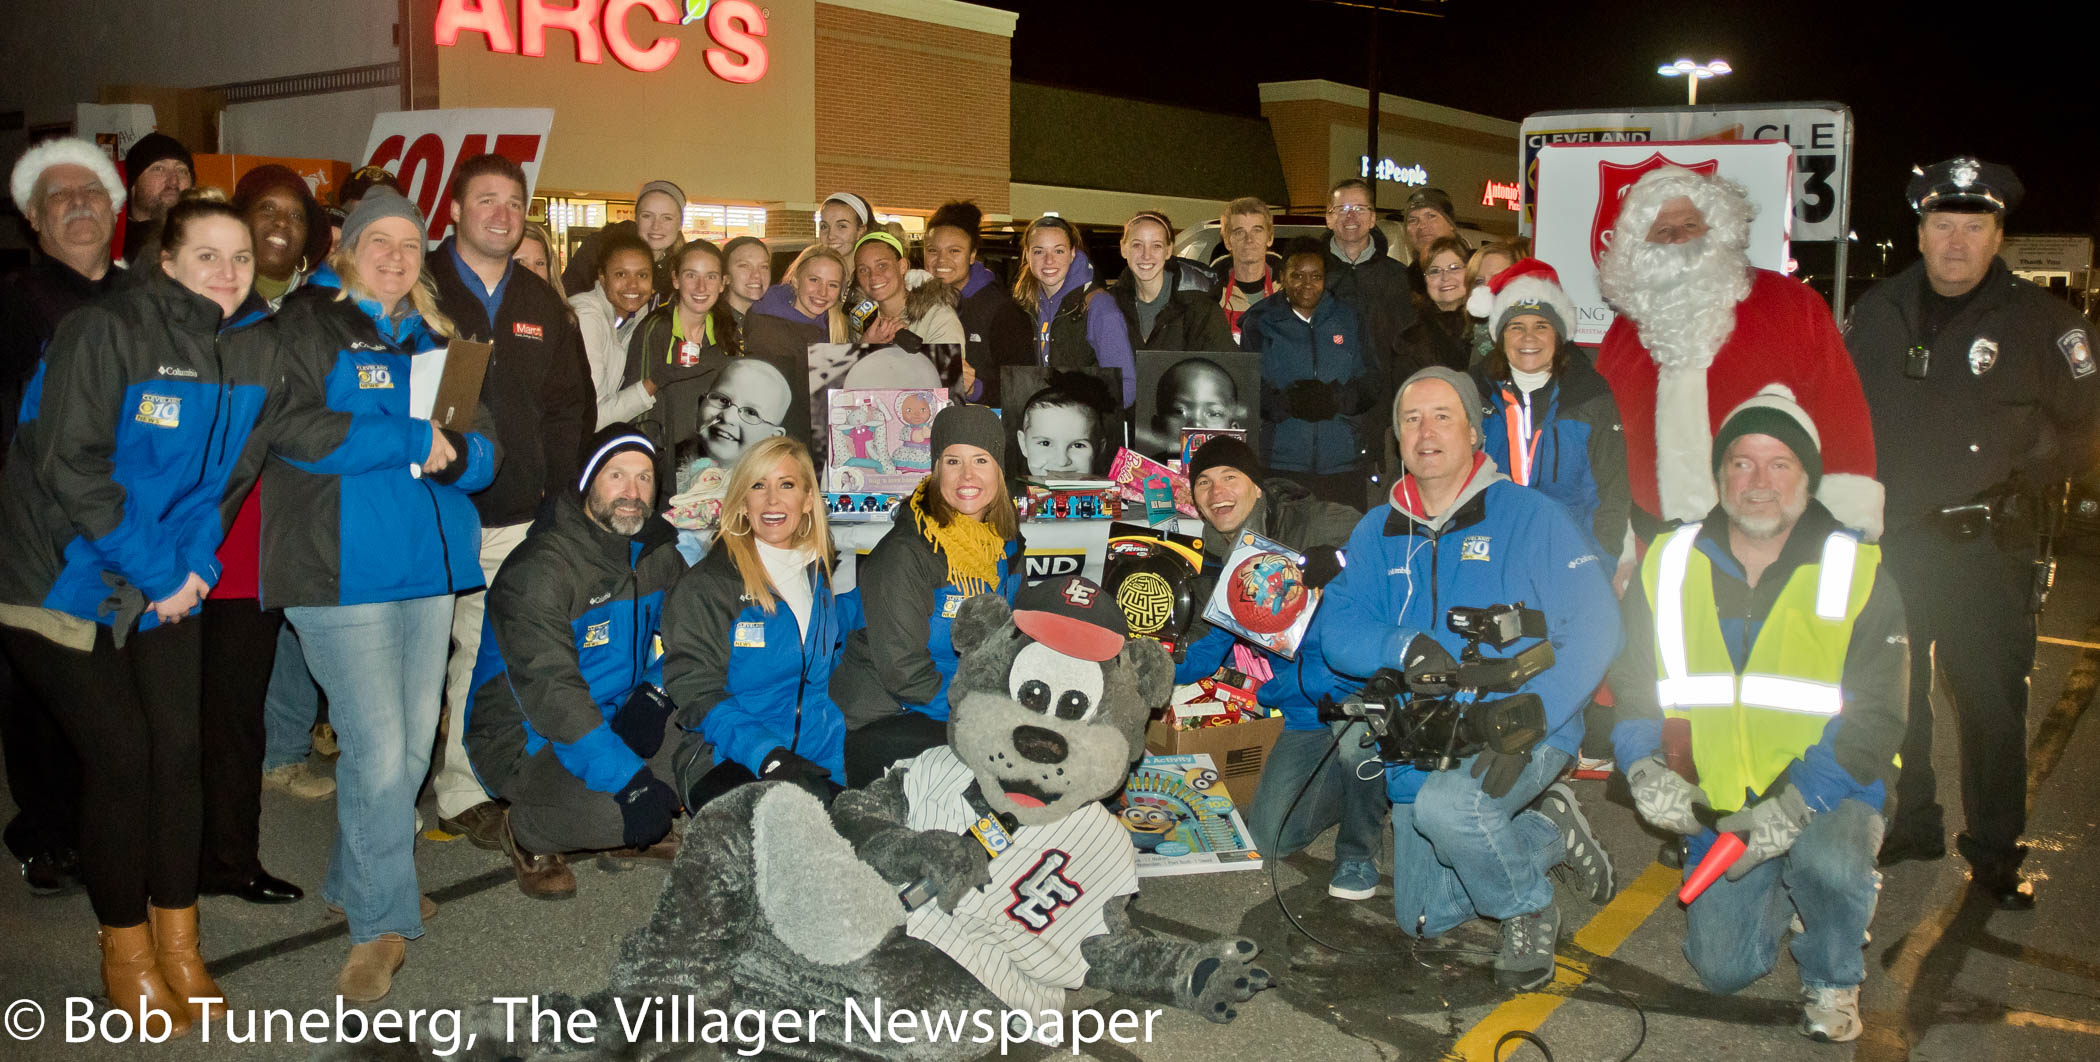 Channel 19 News Donation Drive Comes to Avon - The Villager